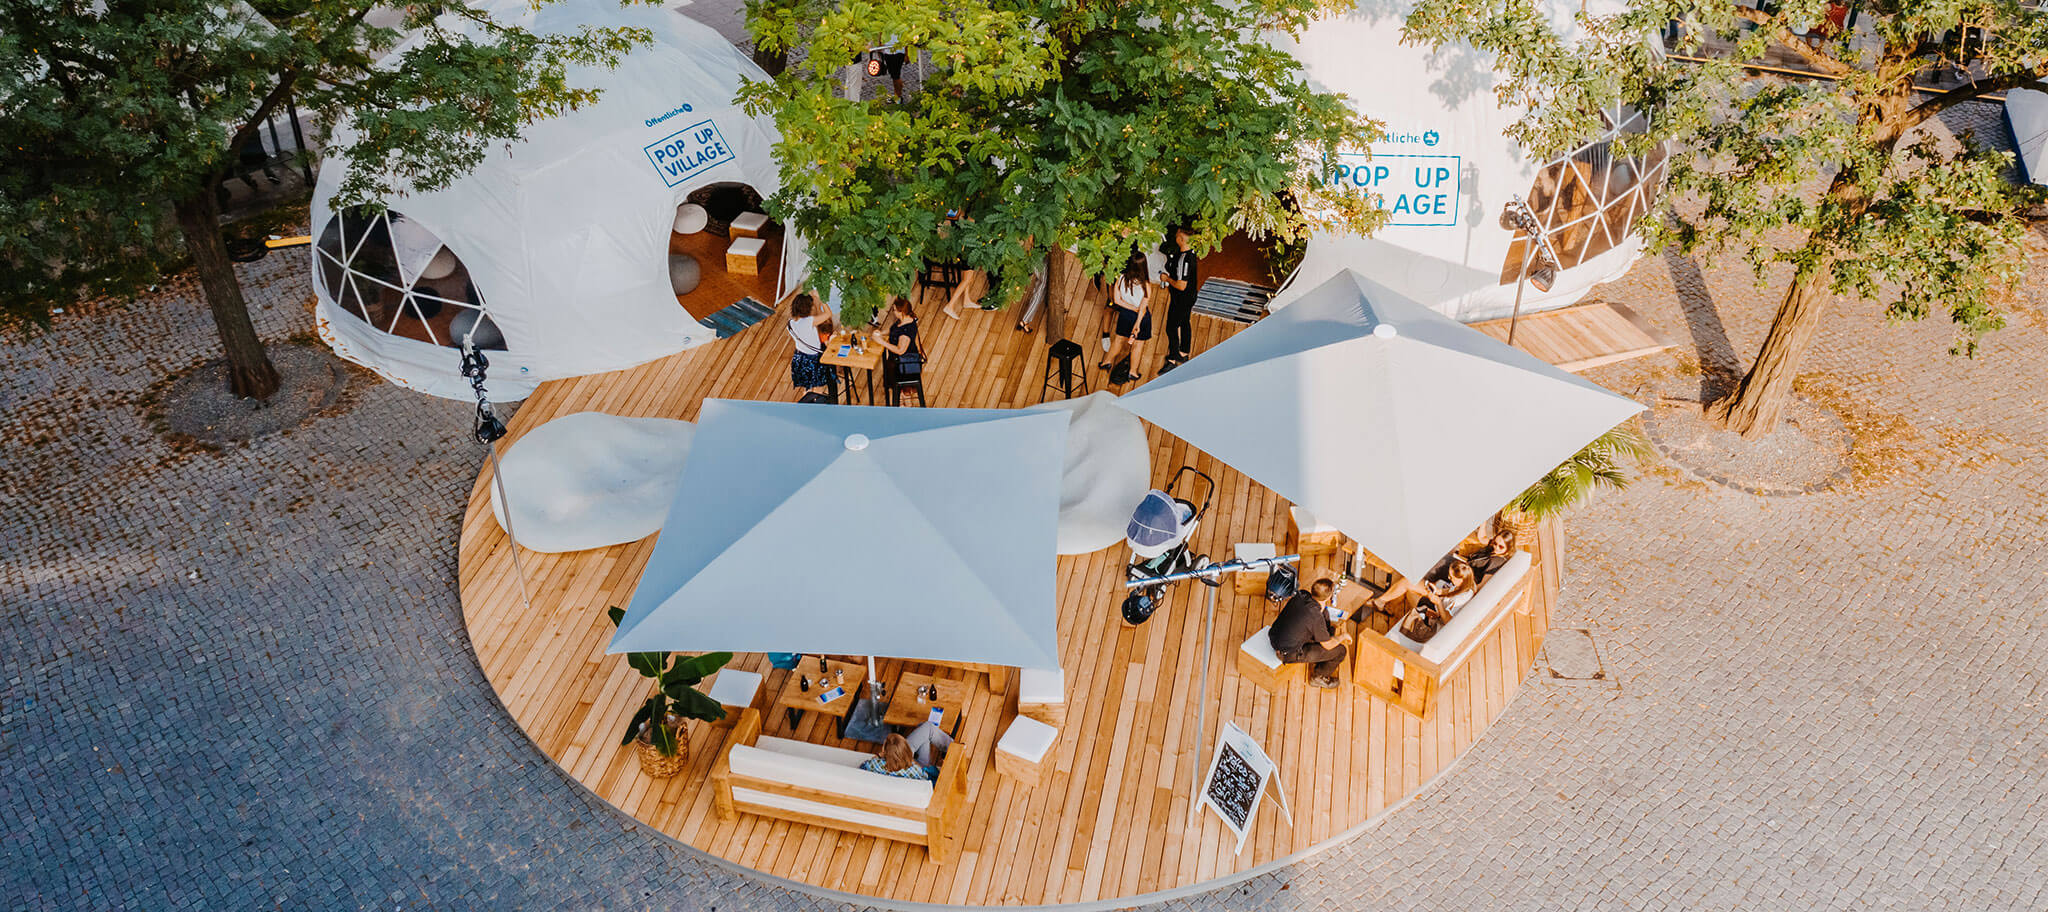 Pop Up Terrasse am Tag